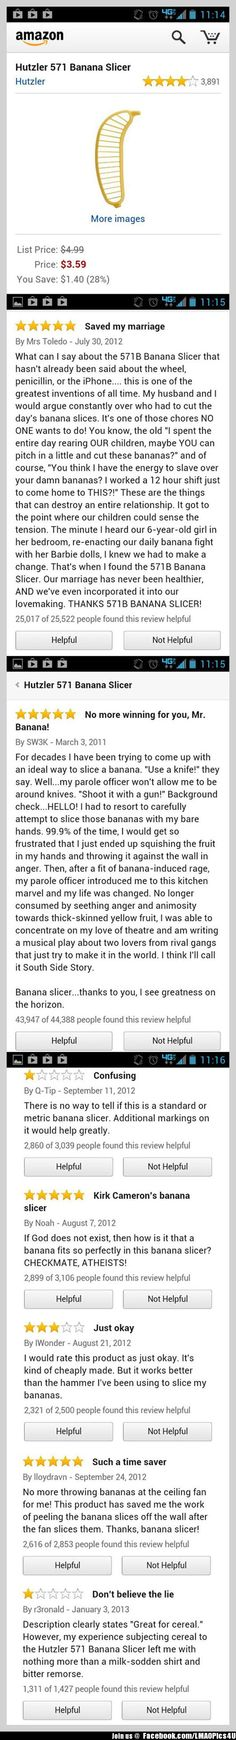 Ask a stupid question, get a stupid answer. Amazon reviews for banana slicer